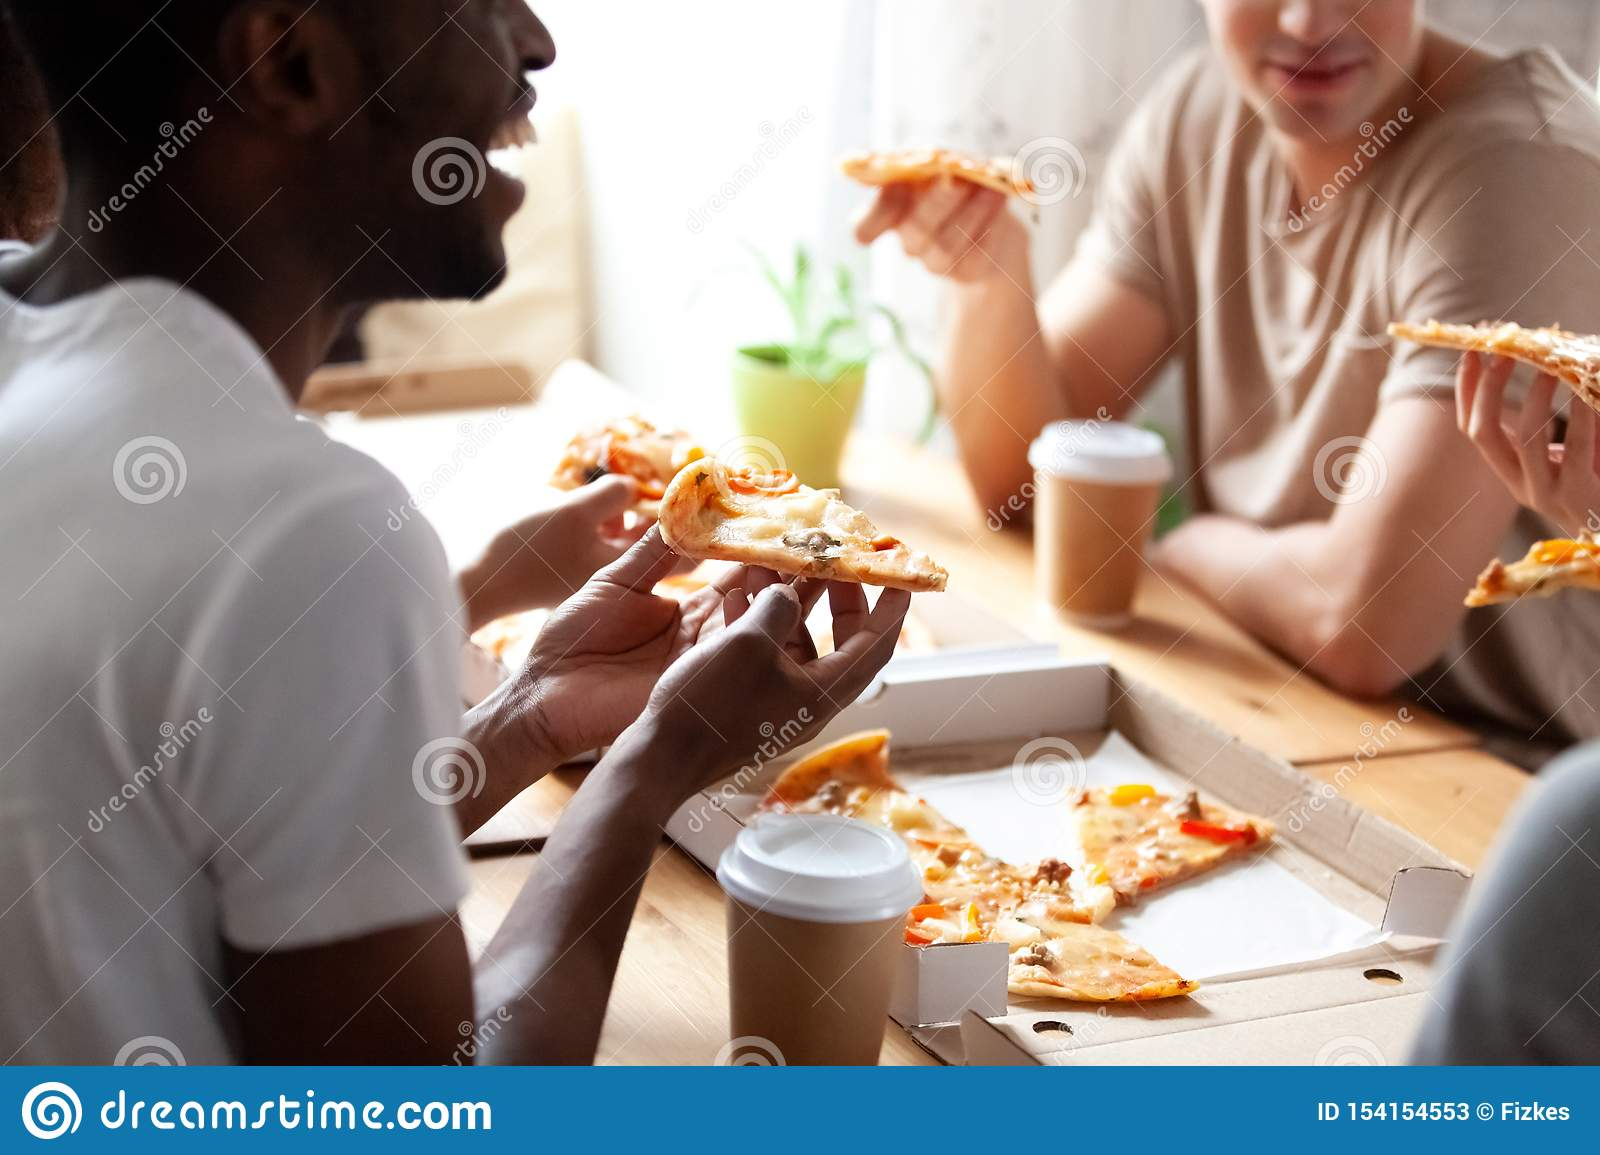 Close up cropped image of diverse friends eating pizza.